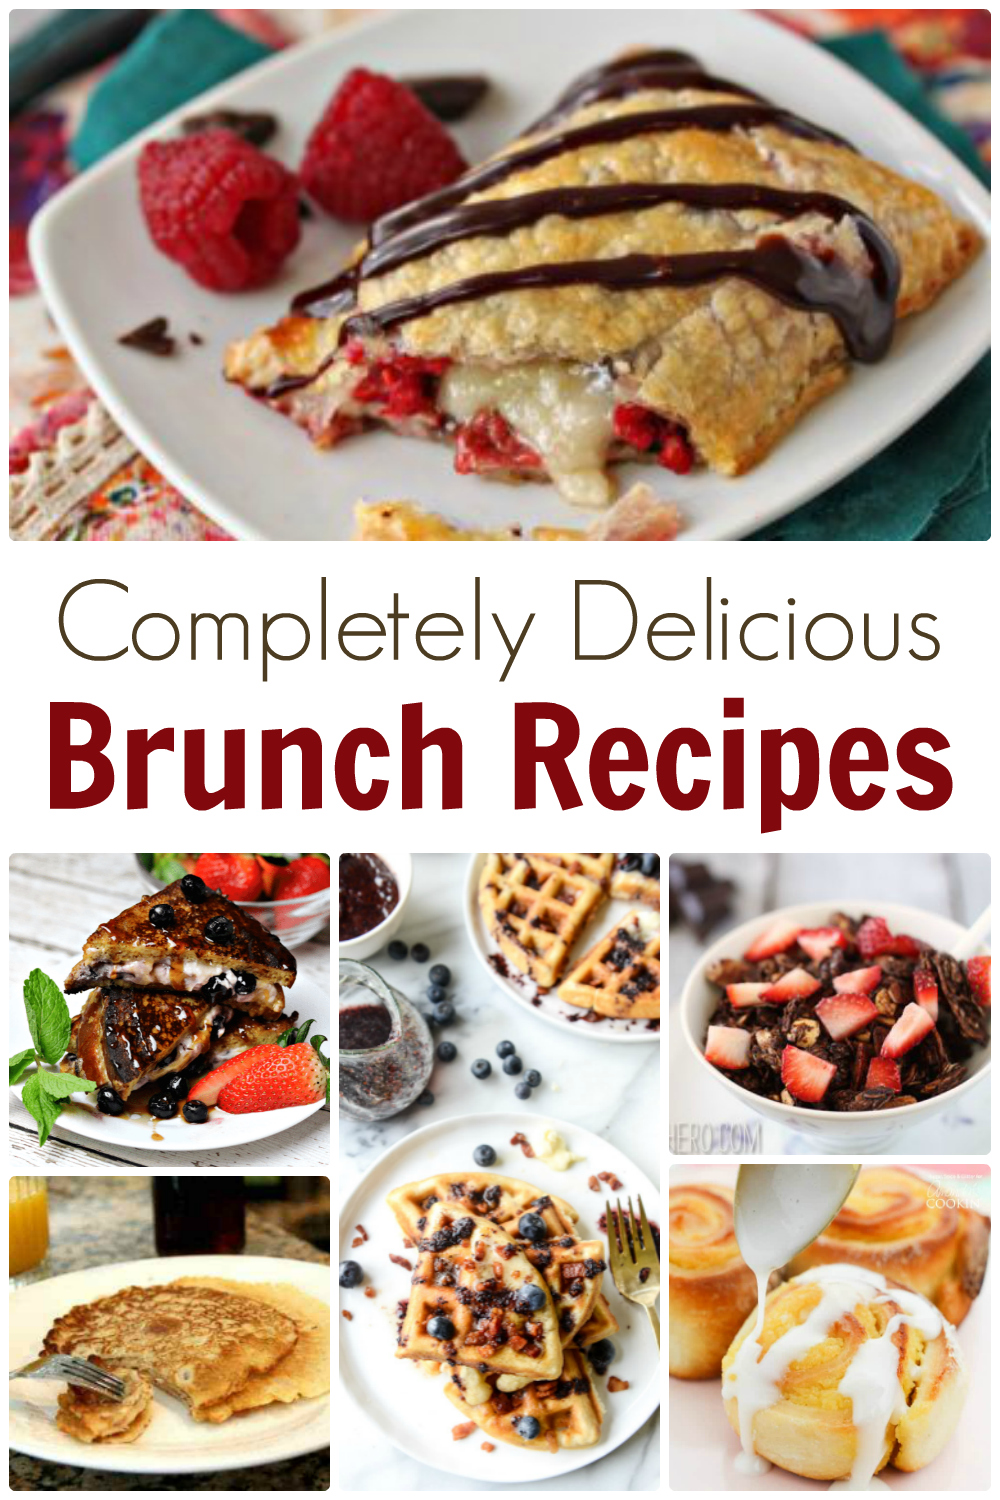 Completely Delicious Brunch Recipes!